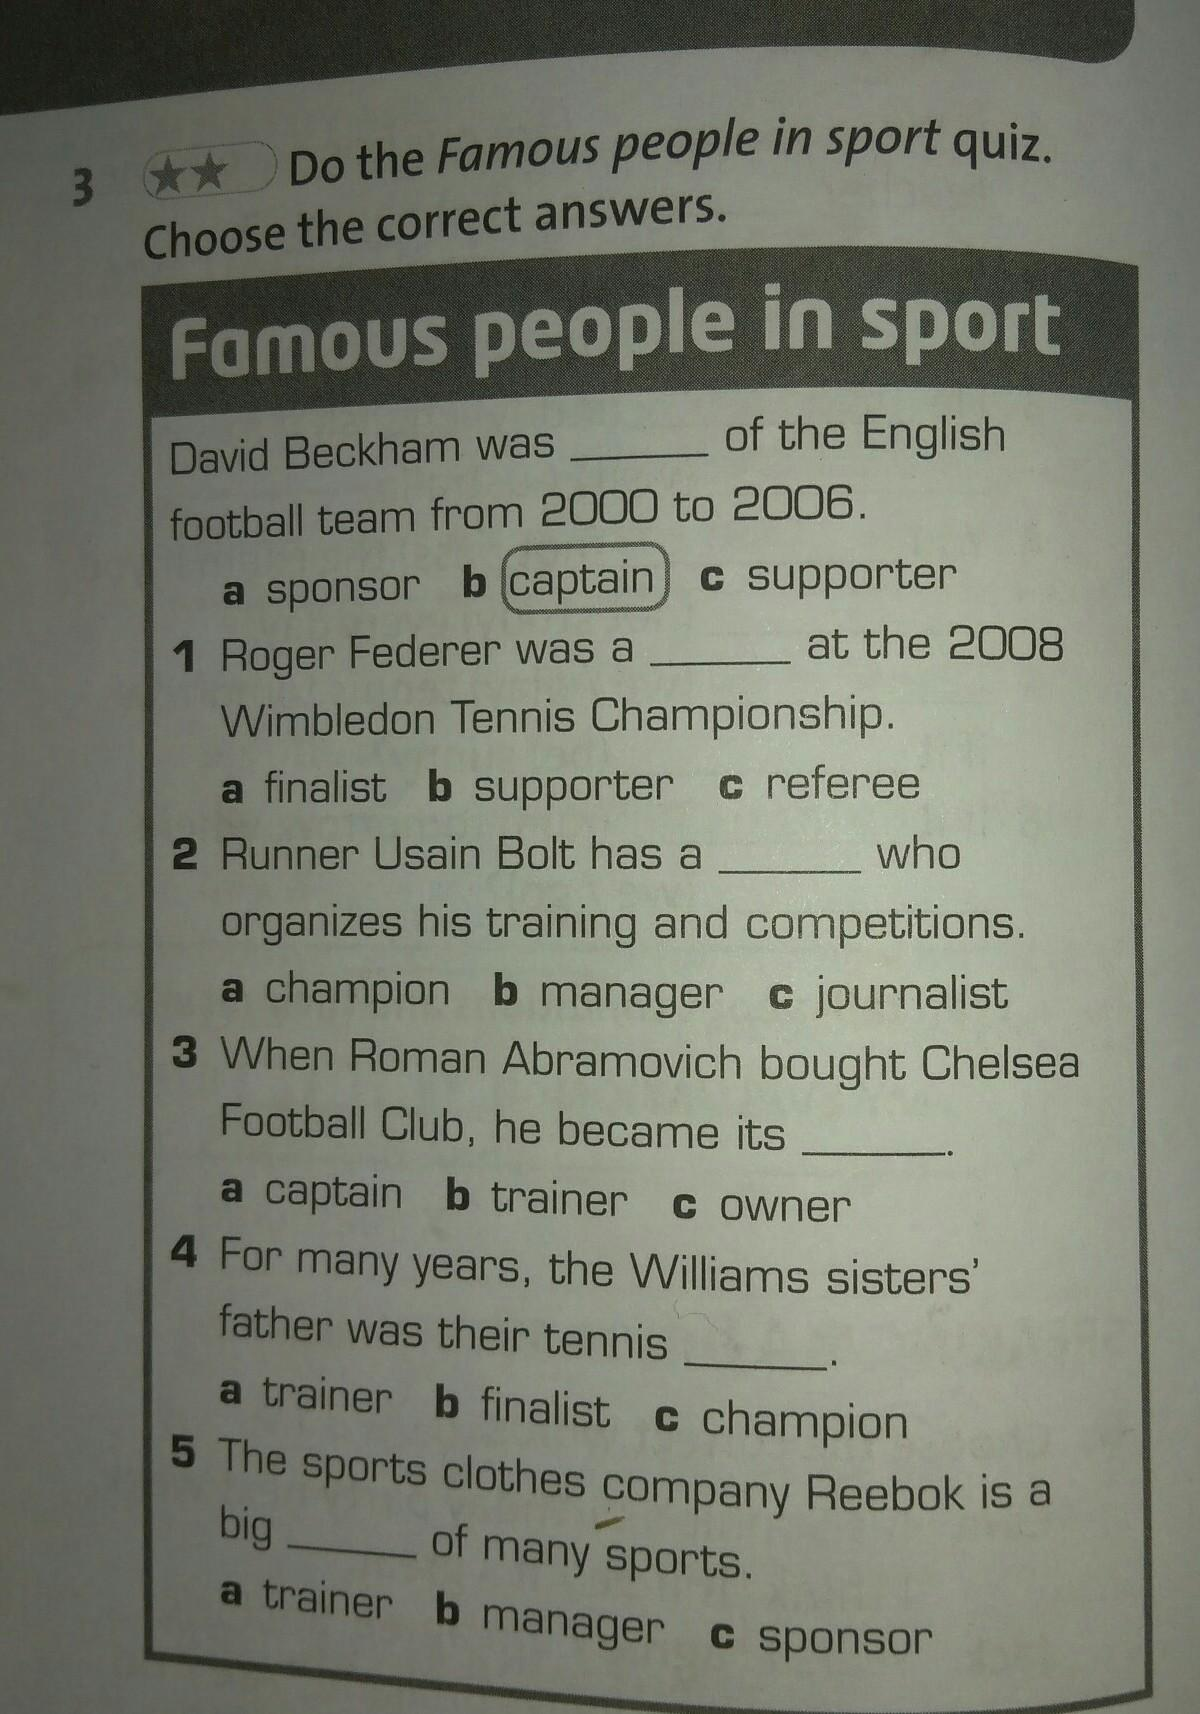 Go the Famous people in sports quiz. Choose the